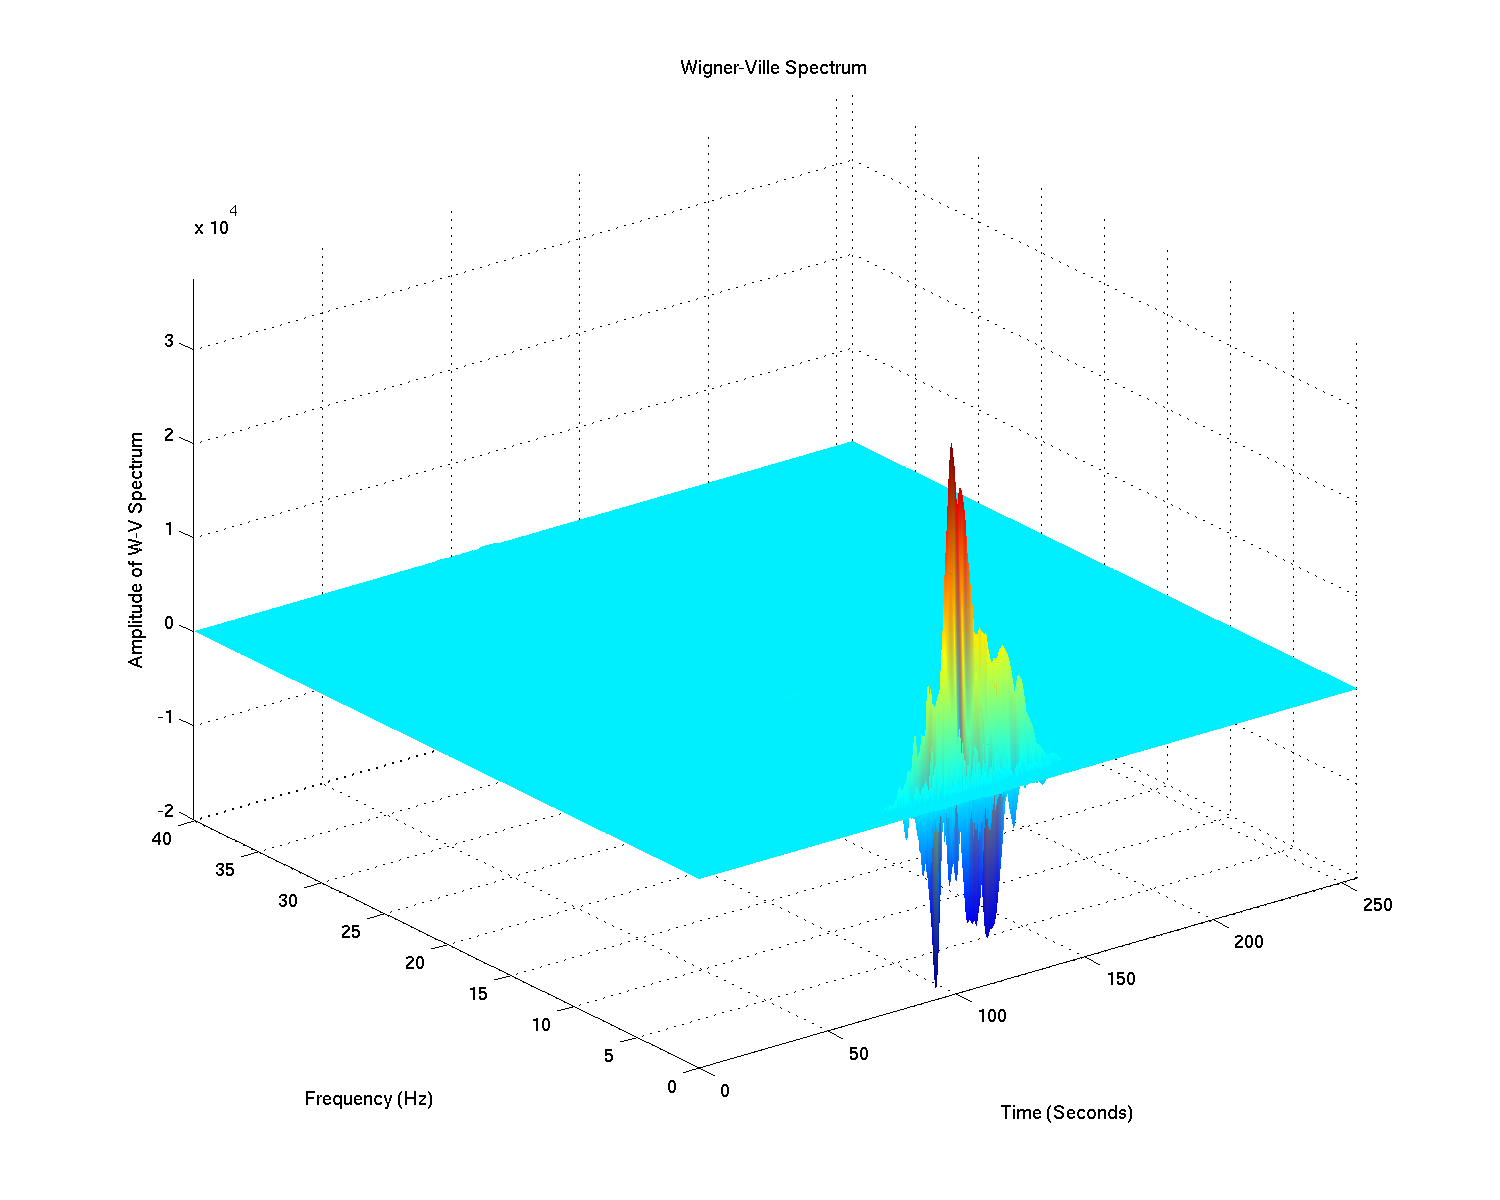 Time-Frequency Analysis: Wigner-Ville Distribution, Reduced